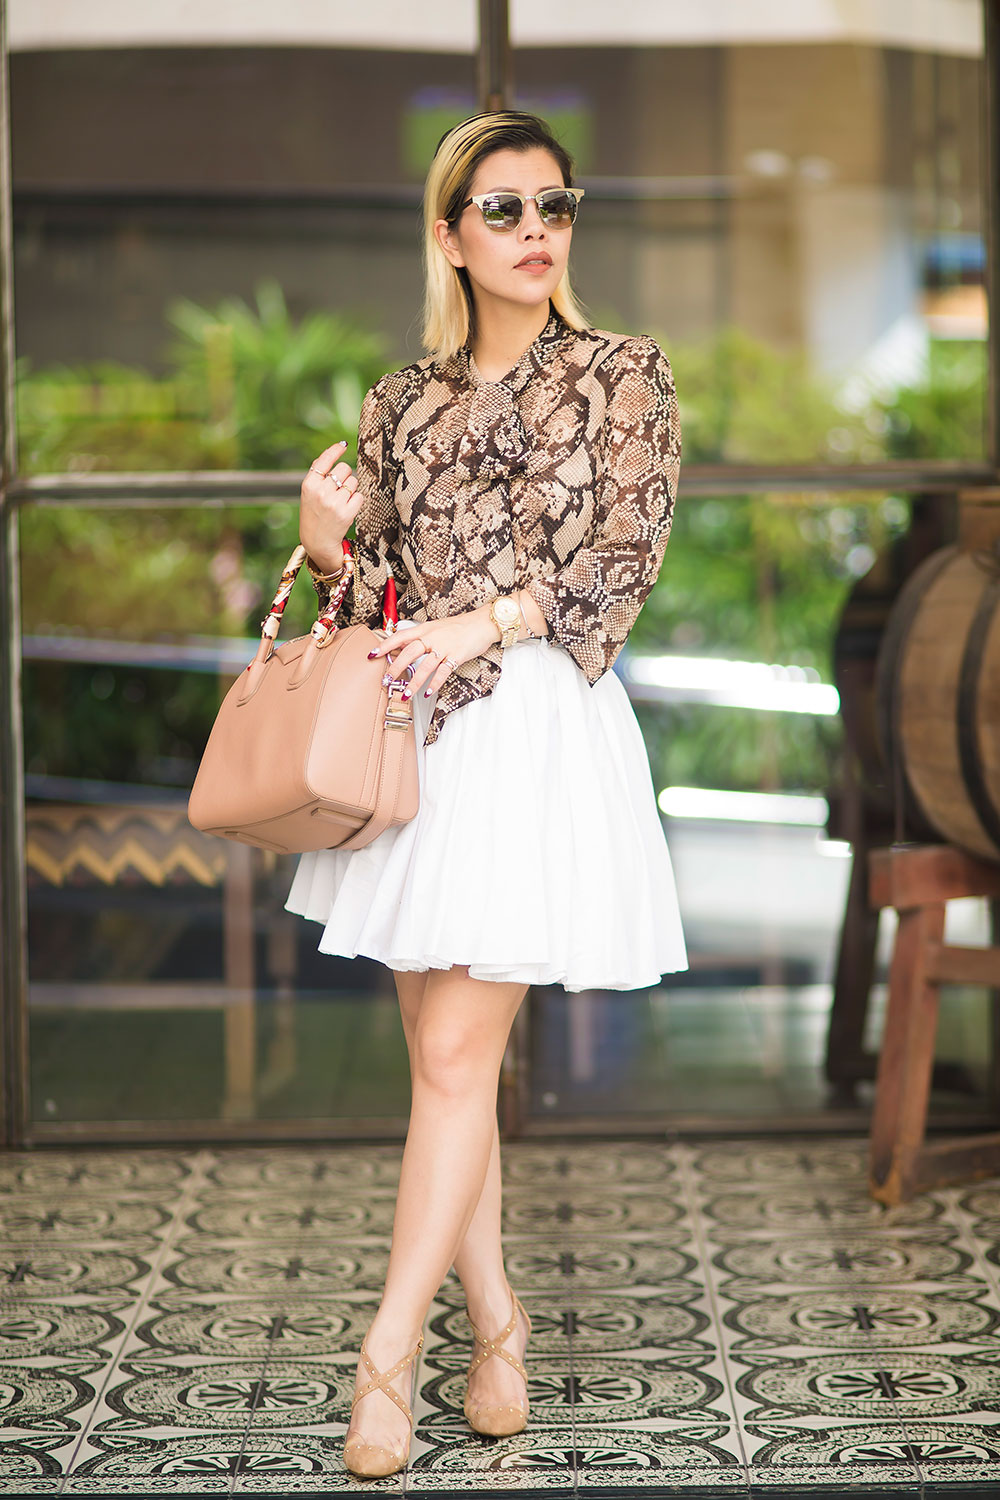 Crystal Phuong- Fashion Blogger- Raye the label shoes & snake skin blouse